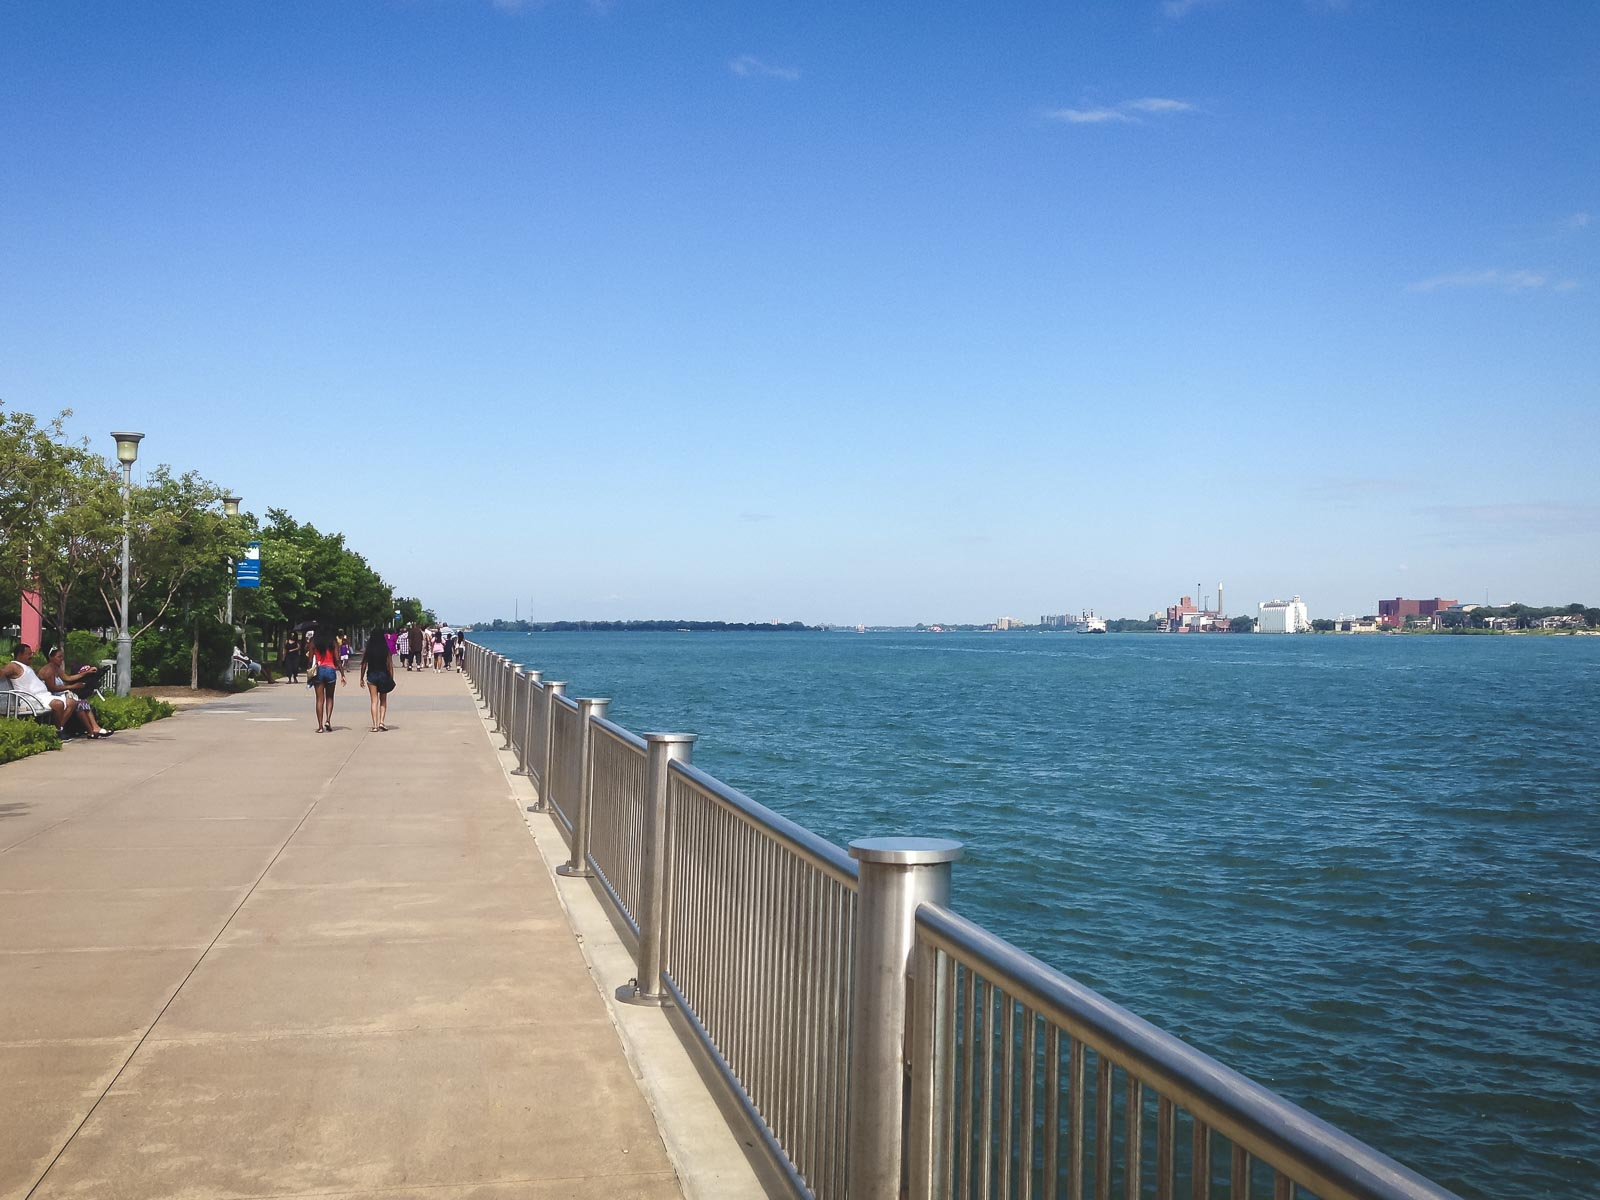 Looking out towards Belle Isle Park